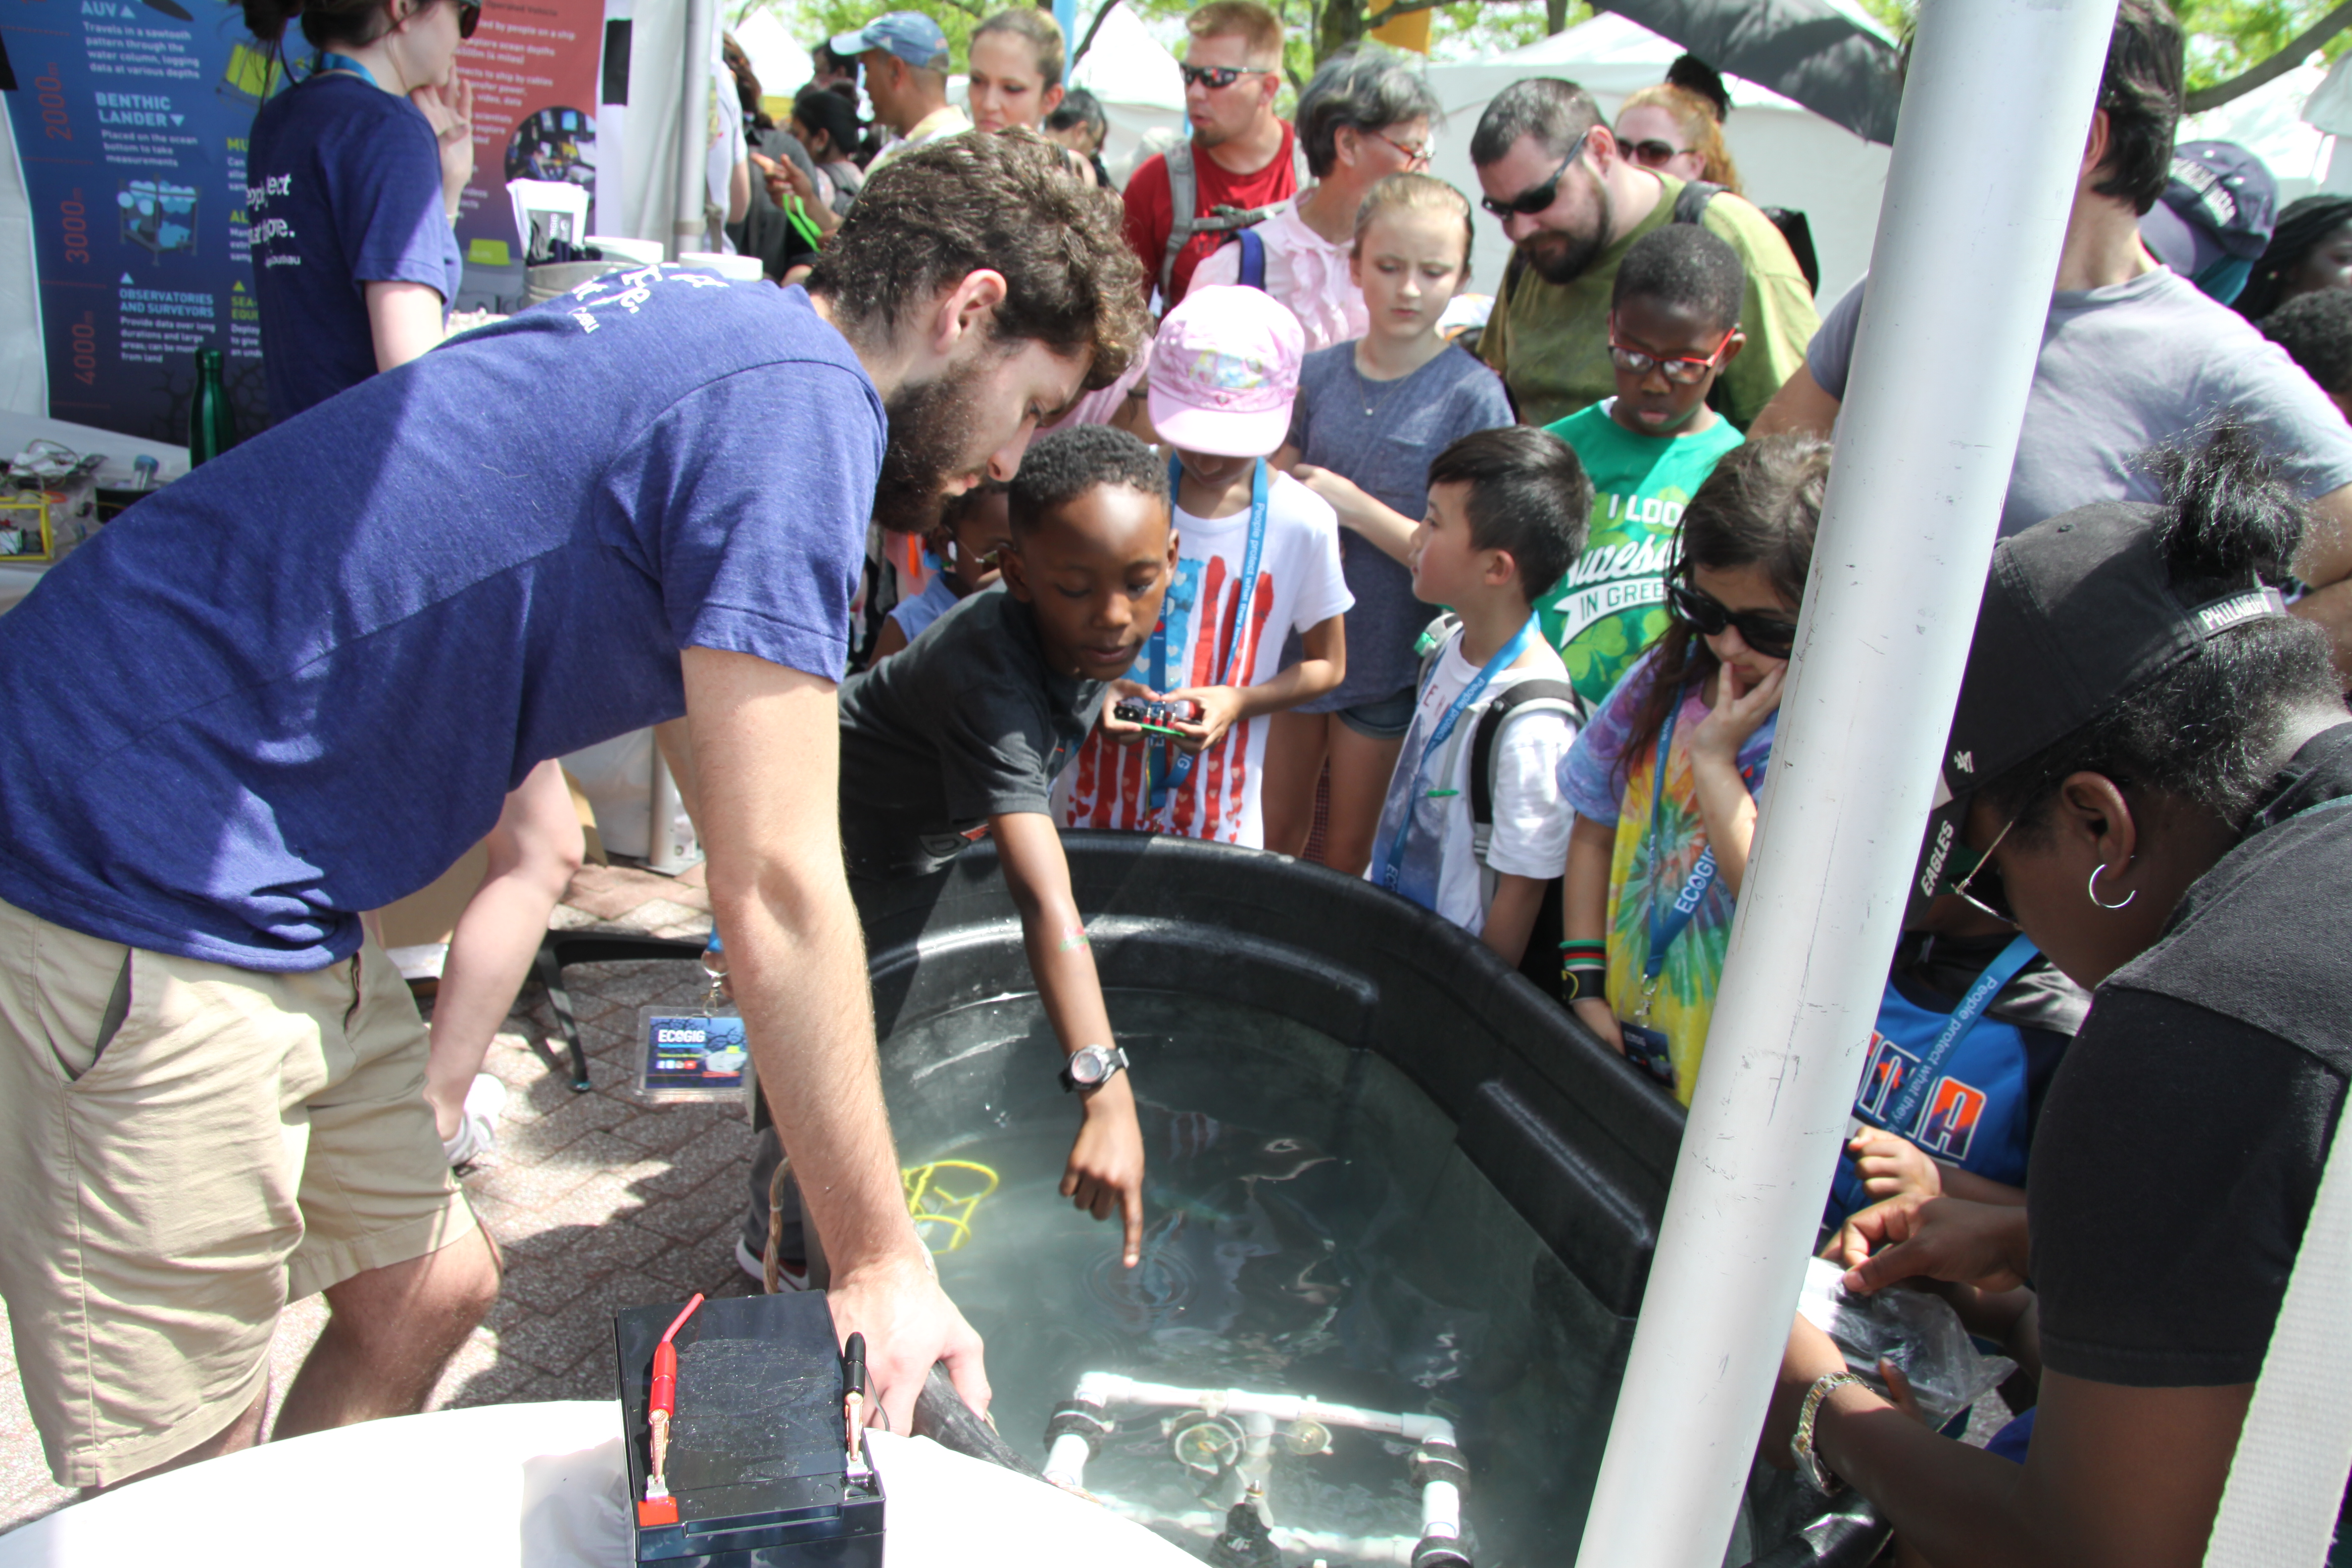 <div style='color:#000000;'><br /><br /><h2>2017 Philadelphia Science Carnival. ECOGIG researchers from Temple University took the Ocean Discovery Zone to the Philadelphia Science Carnival to share the wonders of the ocean and their research on deep sea corals with science interested visitors!</h2>Photos courtesy of Alexis Weinnig (ECOGIG).</div>